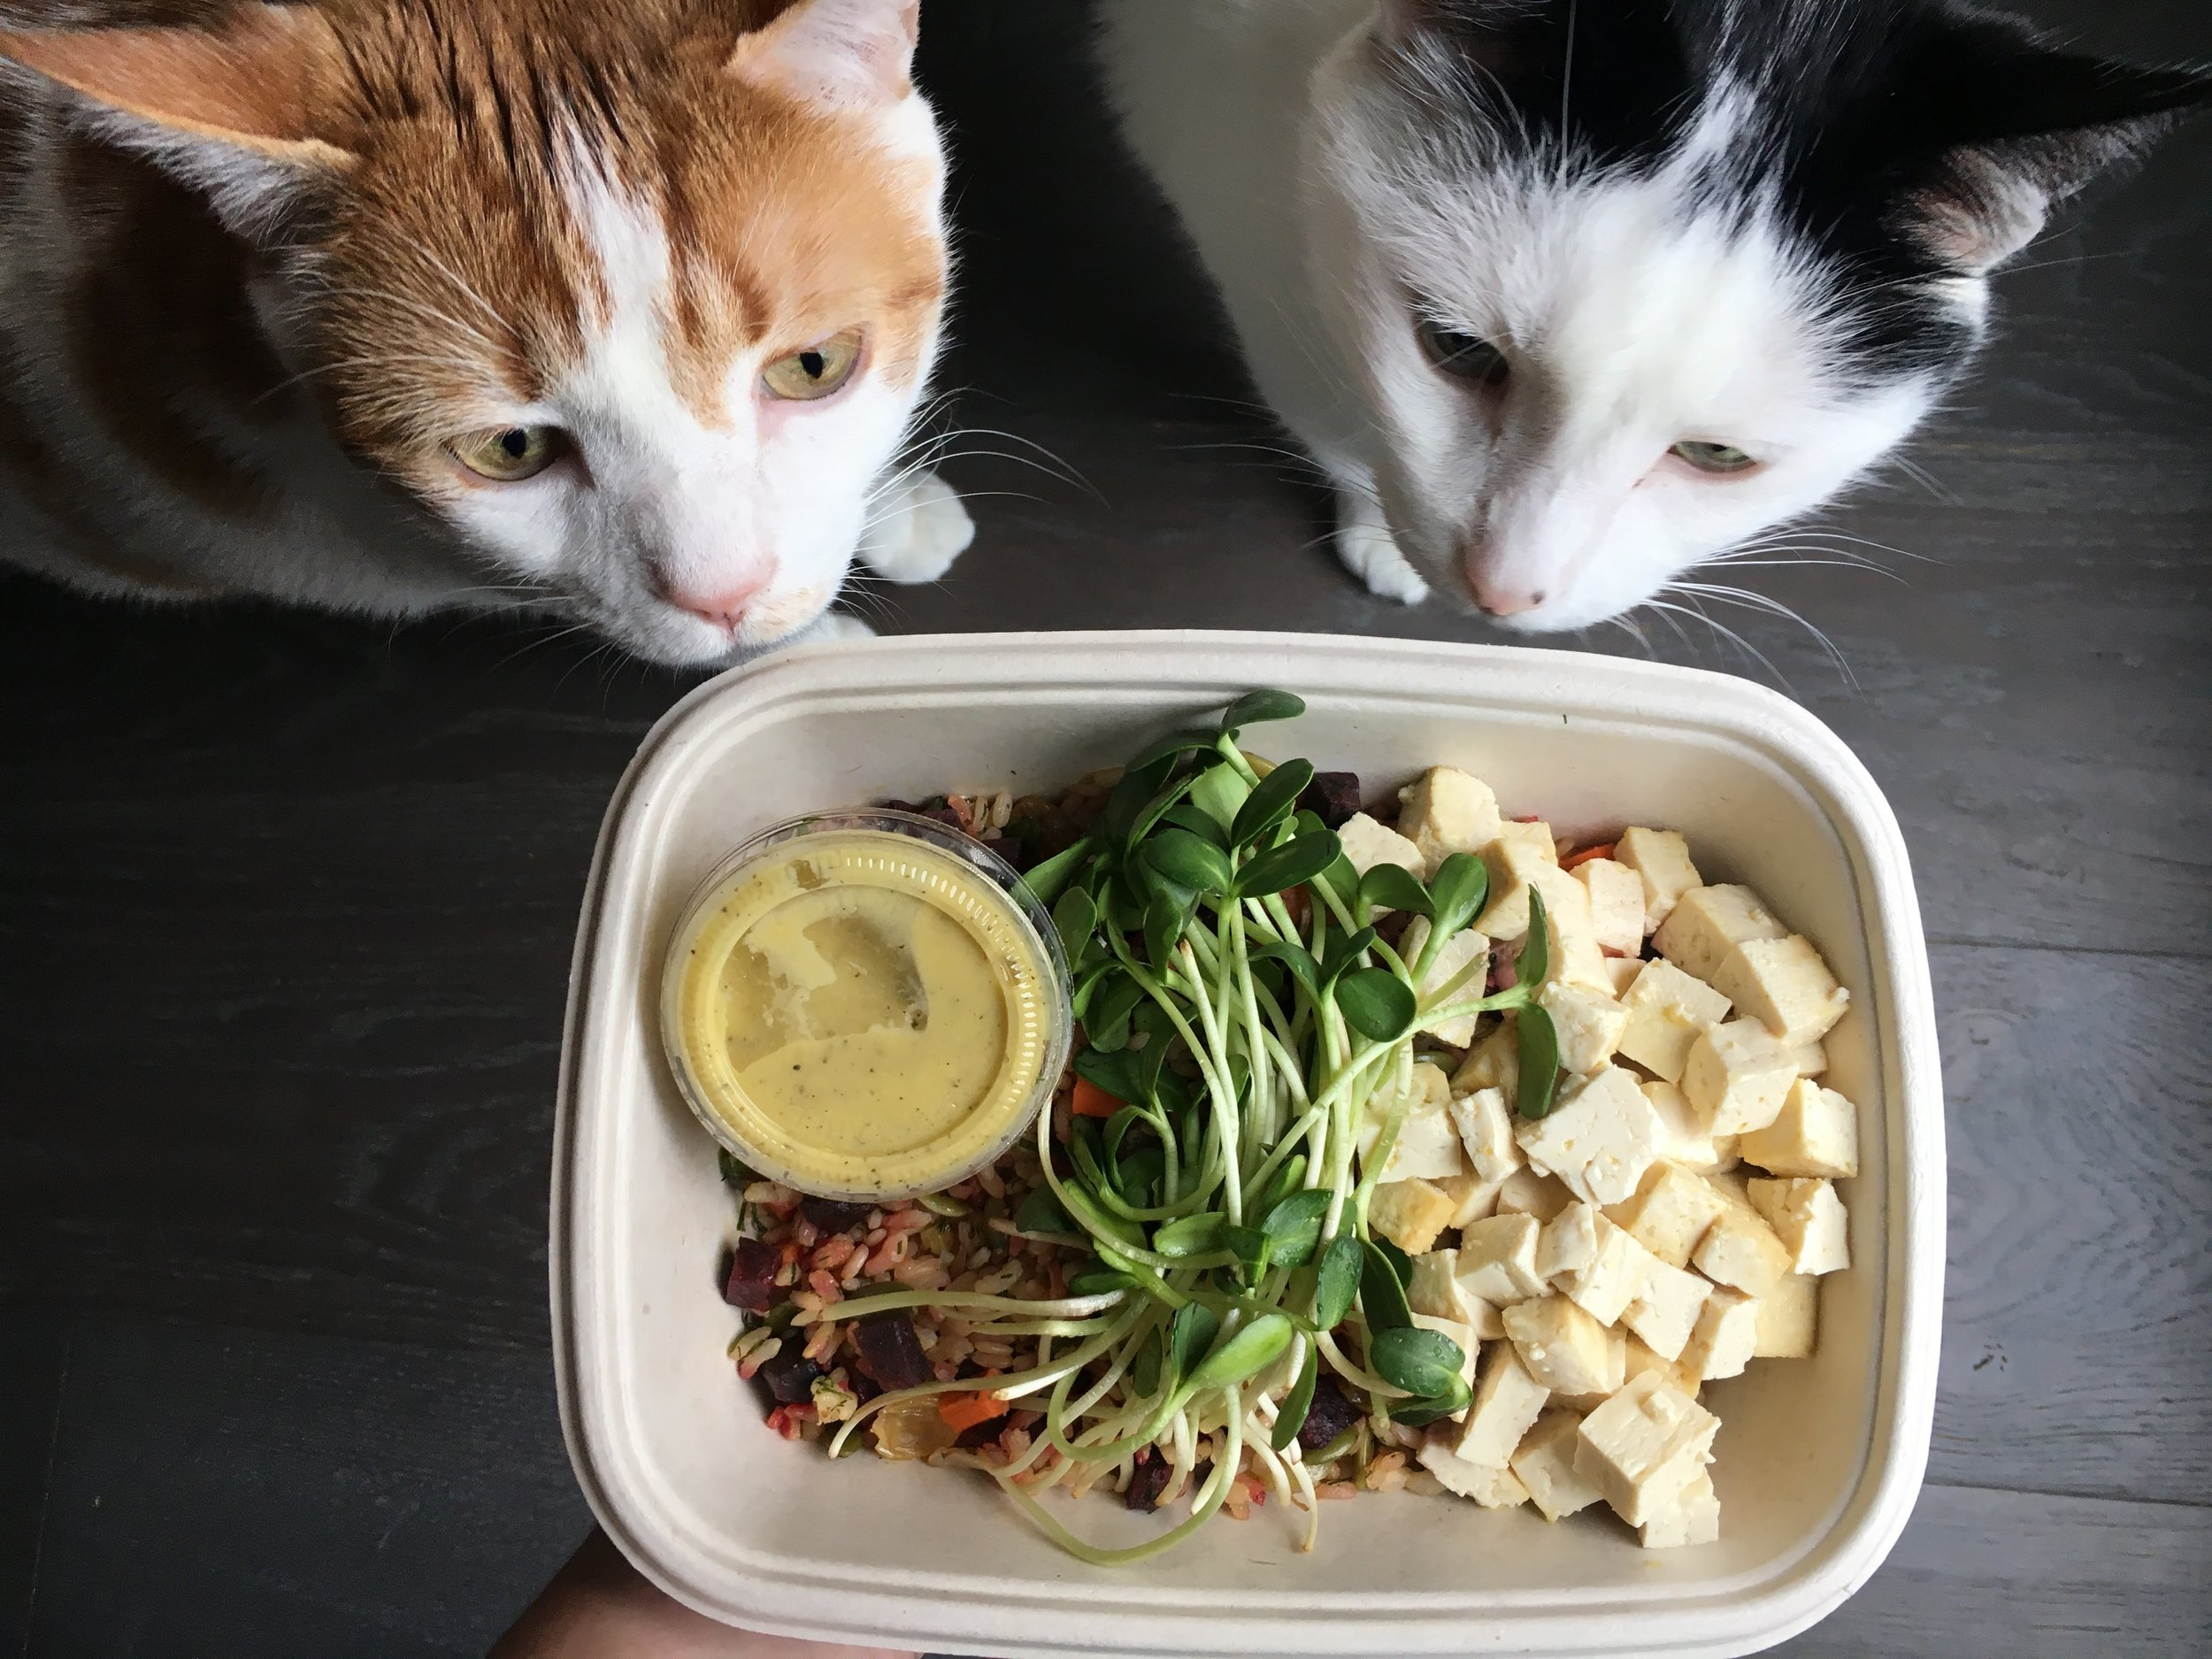 The roasted carrot and beet salad came with delicate, protein-packed tofu and beautiful pea shoots. The toasted brown rice added great texture and left me feeling full and happy.